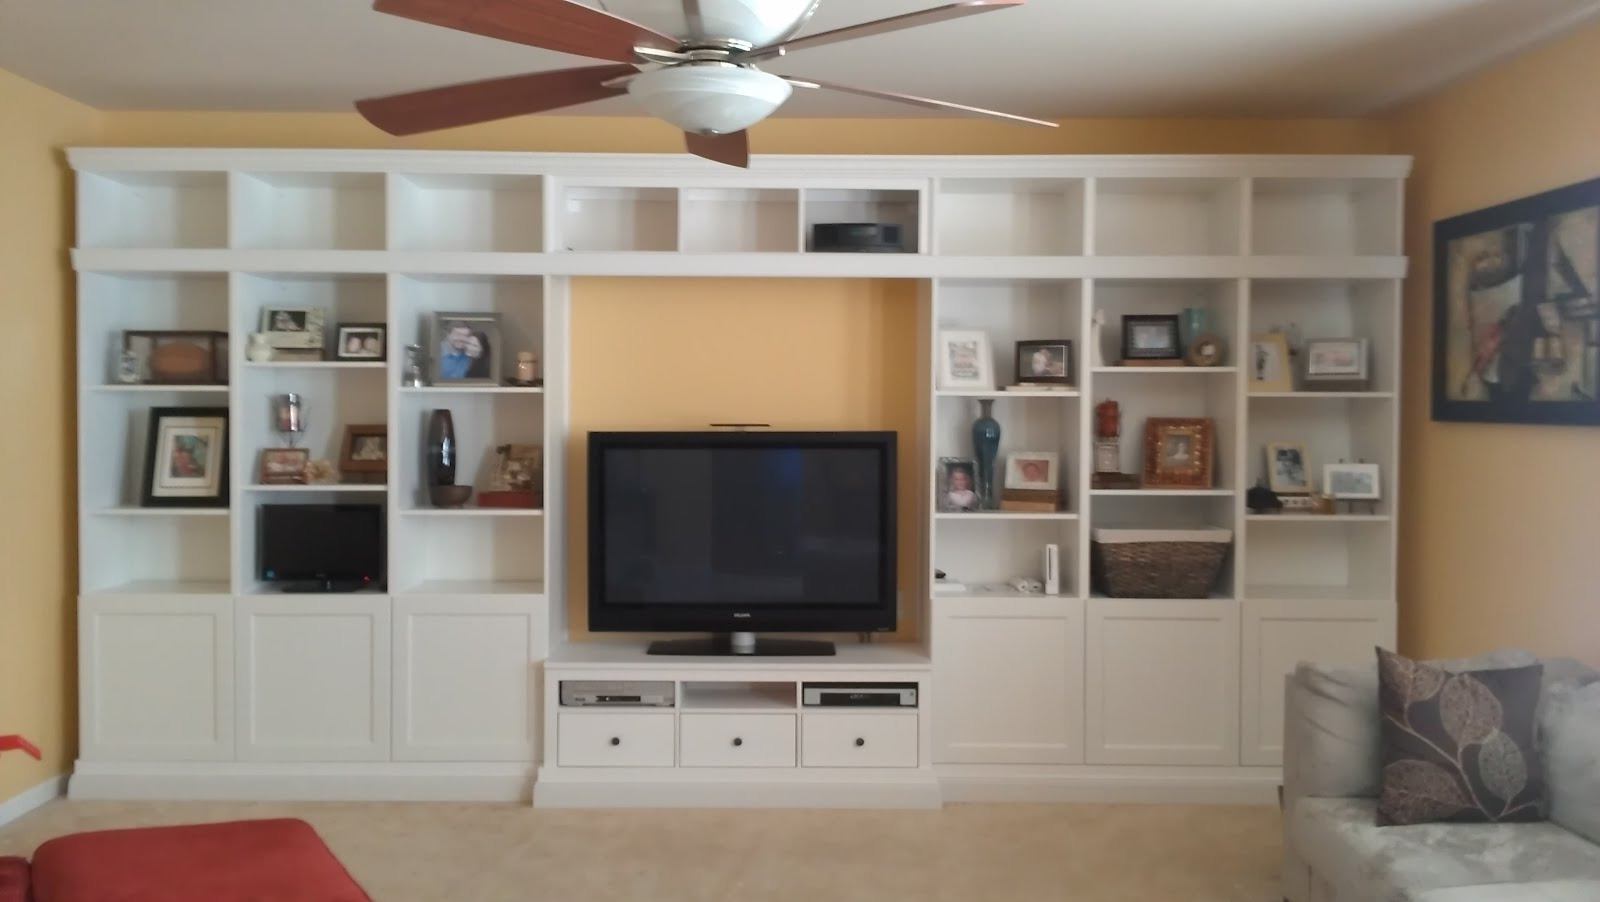 Built In Bookcases With Tv With Regard To Latest Built In Bookcases With Tv (View 5 of 15)